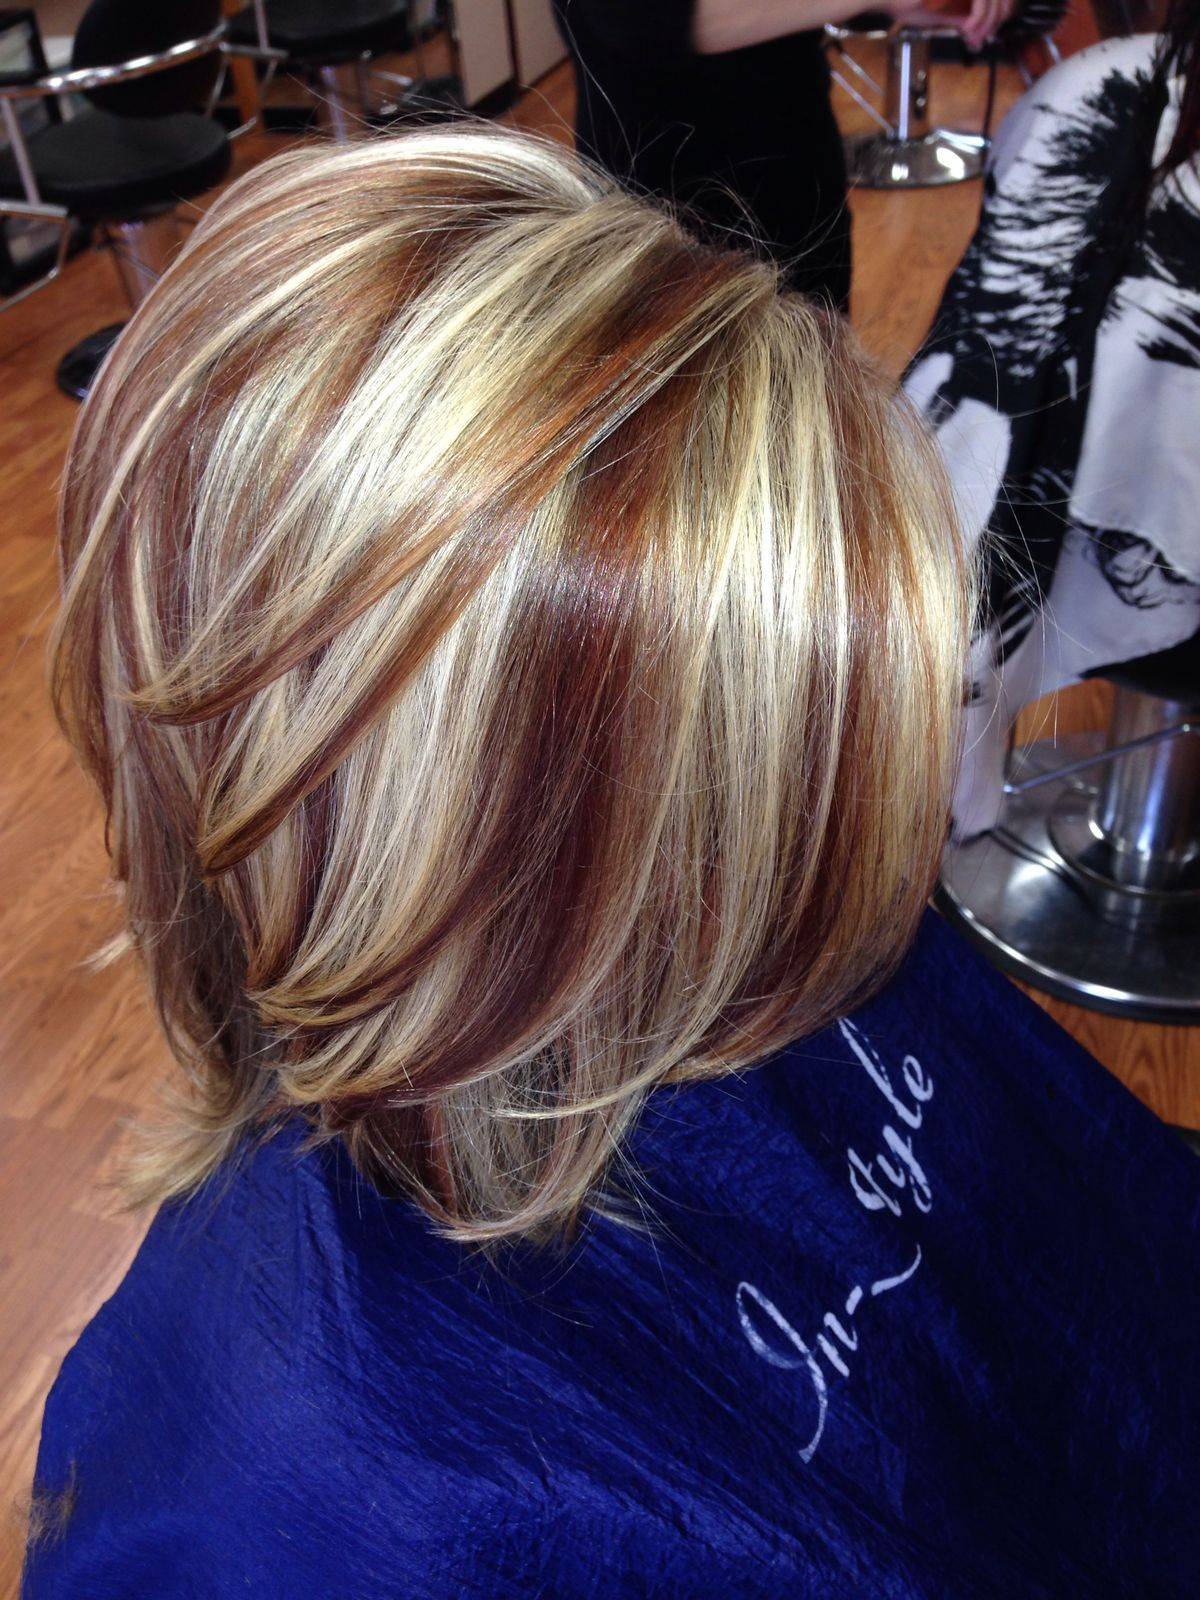 Two Toned Short Haircuts Featuring Blonde and Brown Hair Colors My